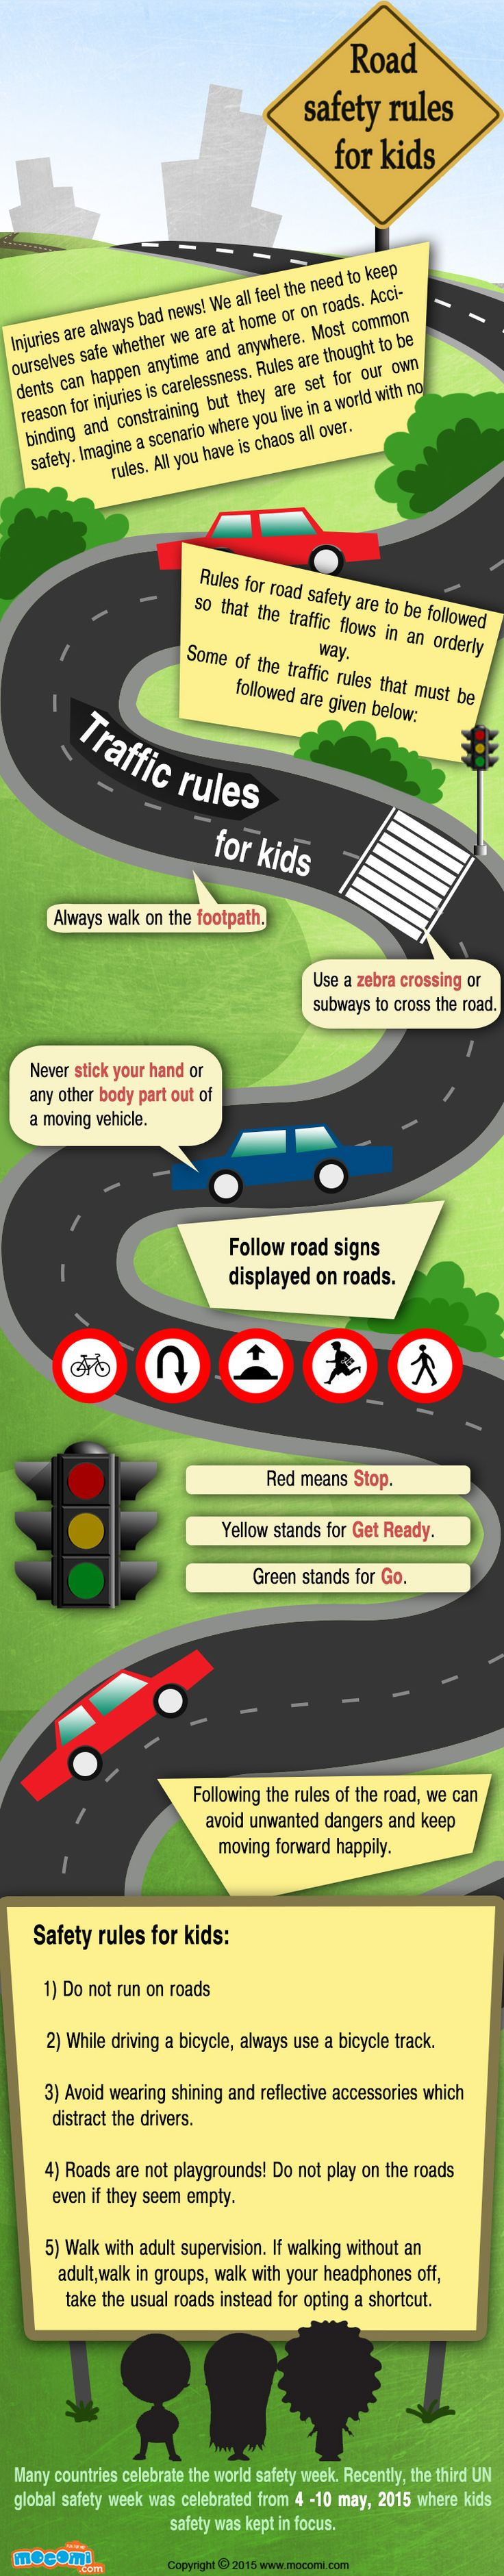 Rules for road safety are to be followed so that the traffic flows in an orderly way. 5 Important #RoadSafety #Rules for Kids!